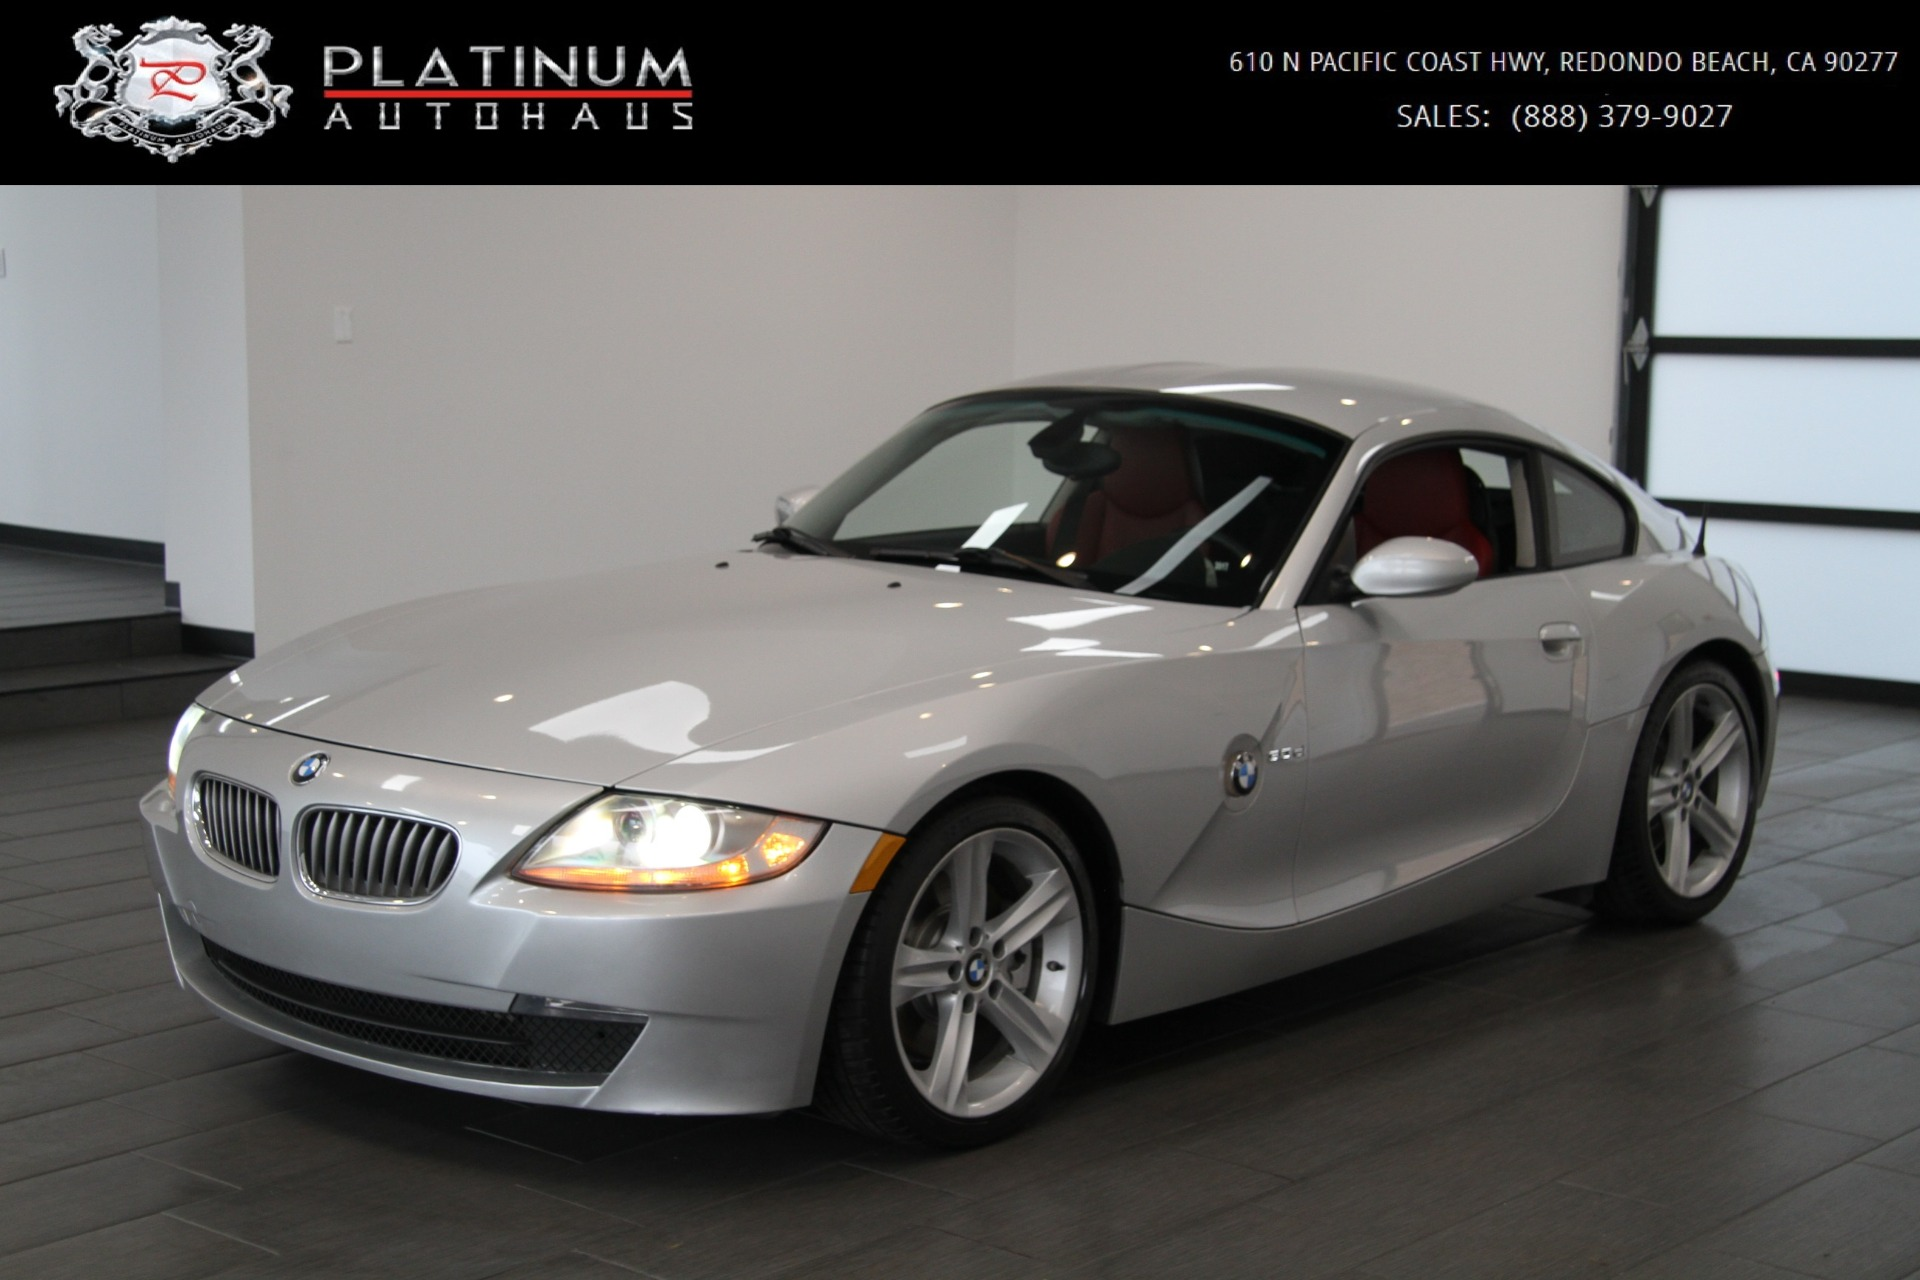 2007 Bmw Z4 3 0si Stock 6055a For Sale Near Redondo